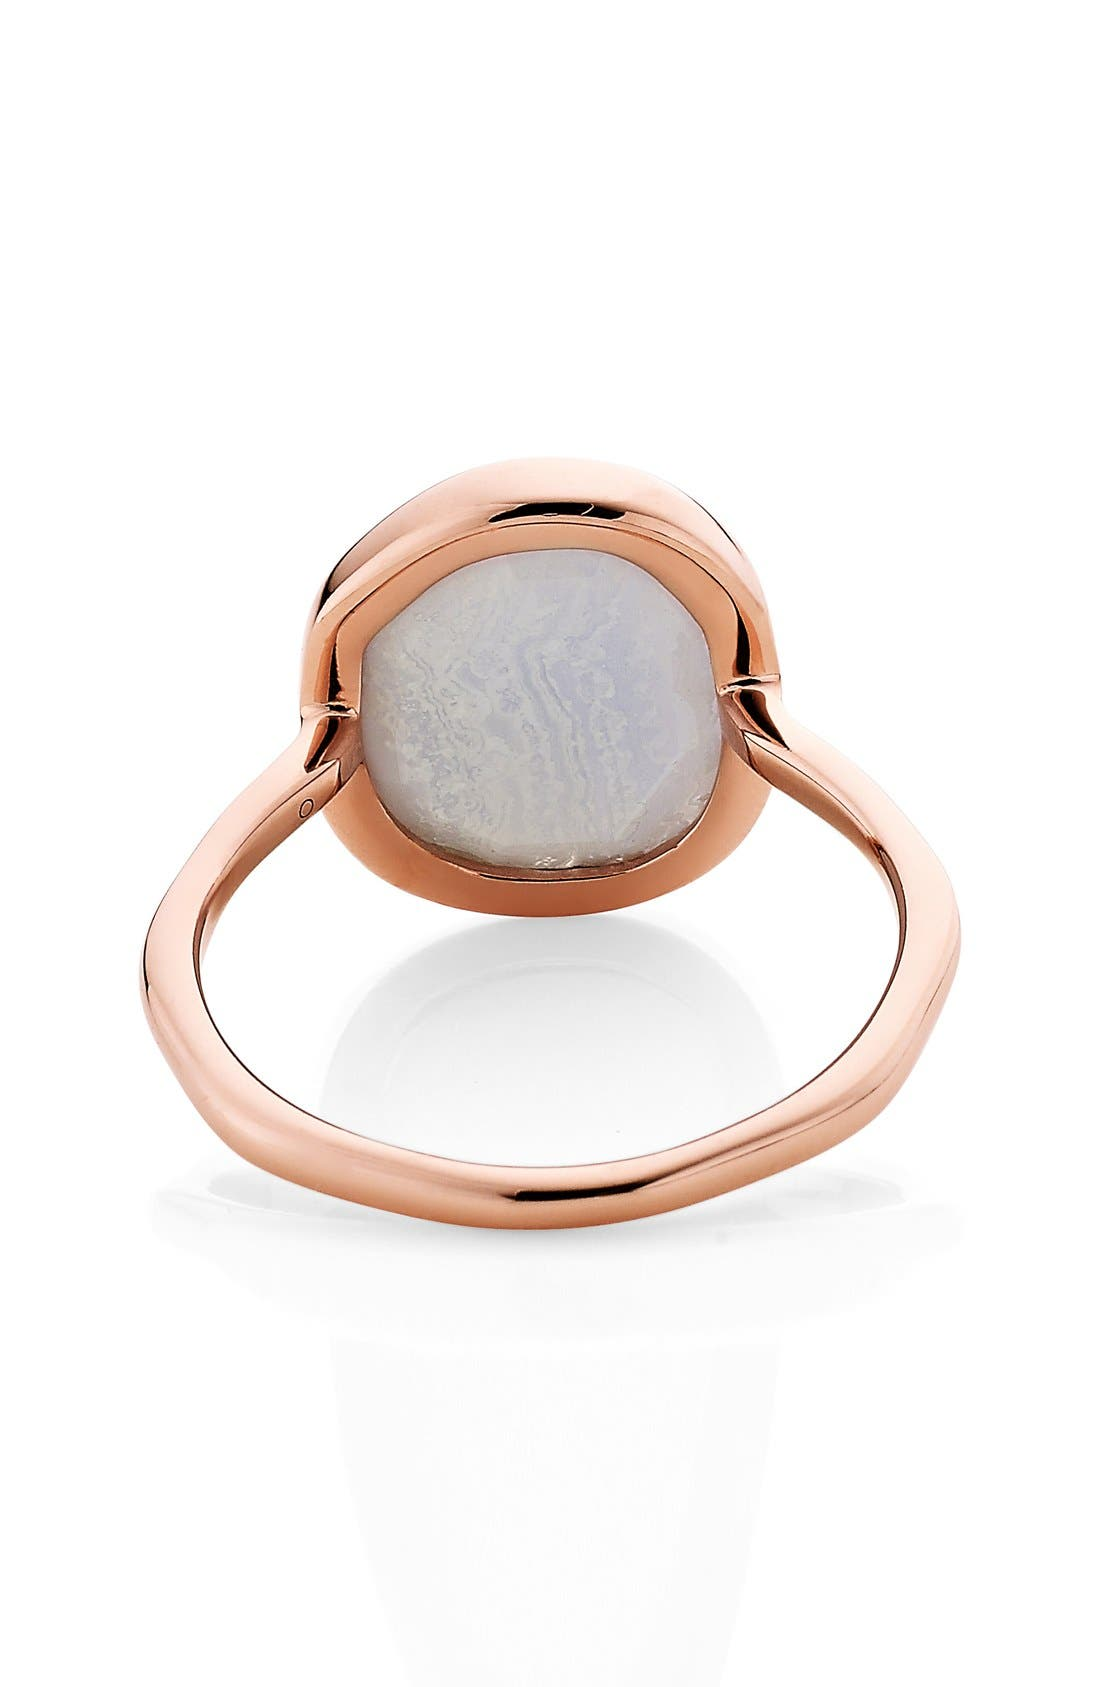 MONICA VINADER, Siren Medium Semiprecious Stone Stacking Ring, Alternate thumbnail 5, color, ROSE GOLD/ BLUE LACE AGATE